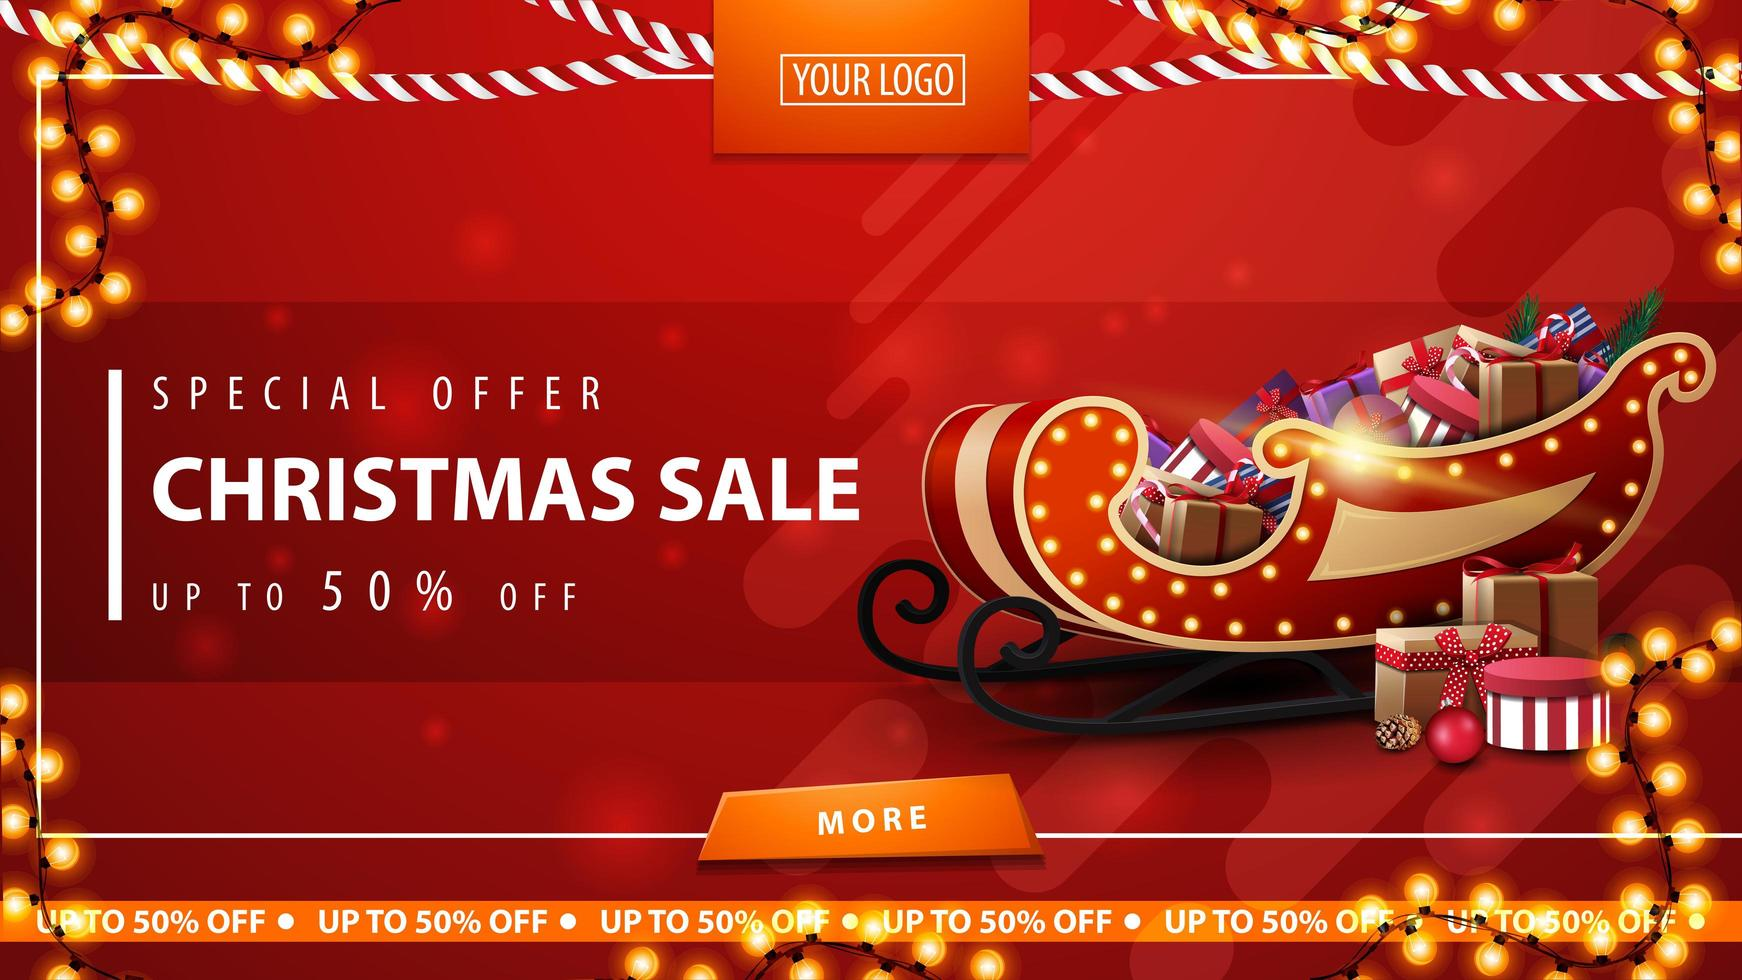 Special offer, Christmas sale, up to 50 off, red discount banner with garlands, button, place for logo and Santa Sleigh with presents vector